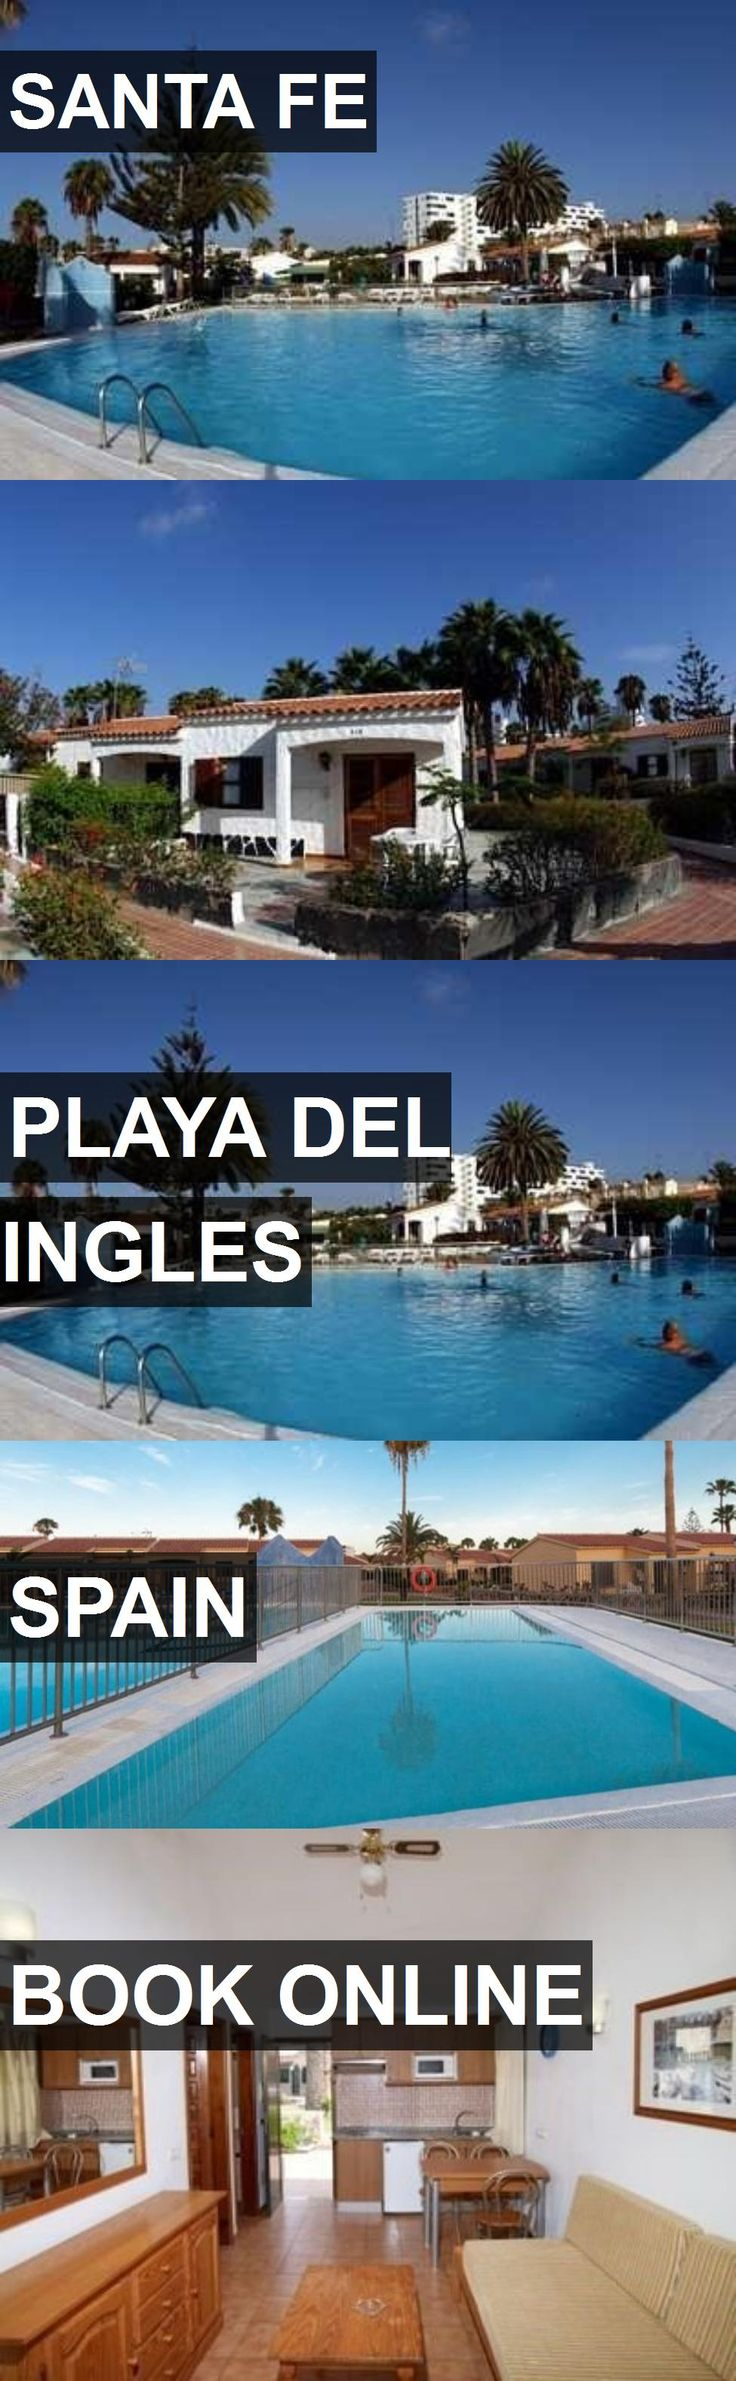 Hotel SANTA FE in Playa del Ingles, Spain. For more information, photos, reviews and best prices please follow the link. #Spain #PlayadelIngles #travel #vacation #hotel